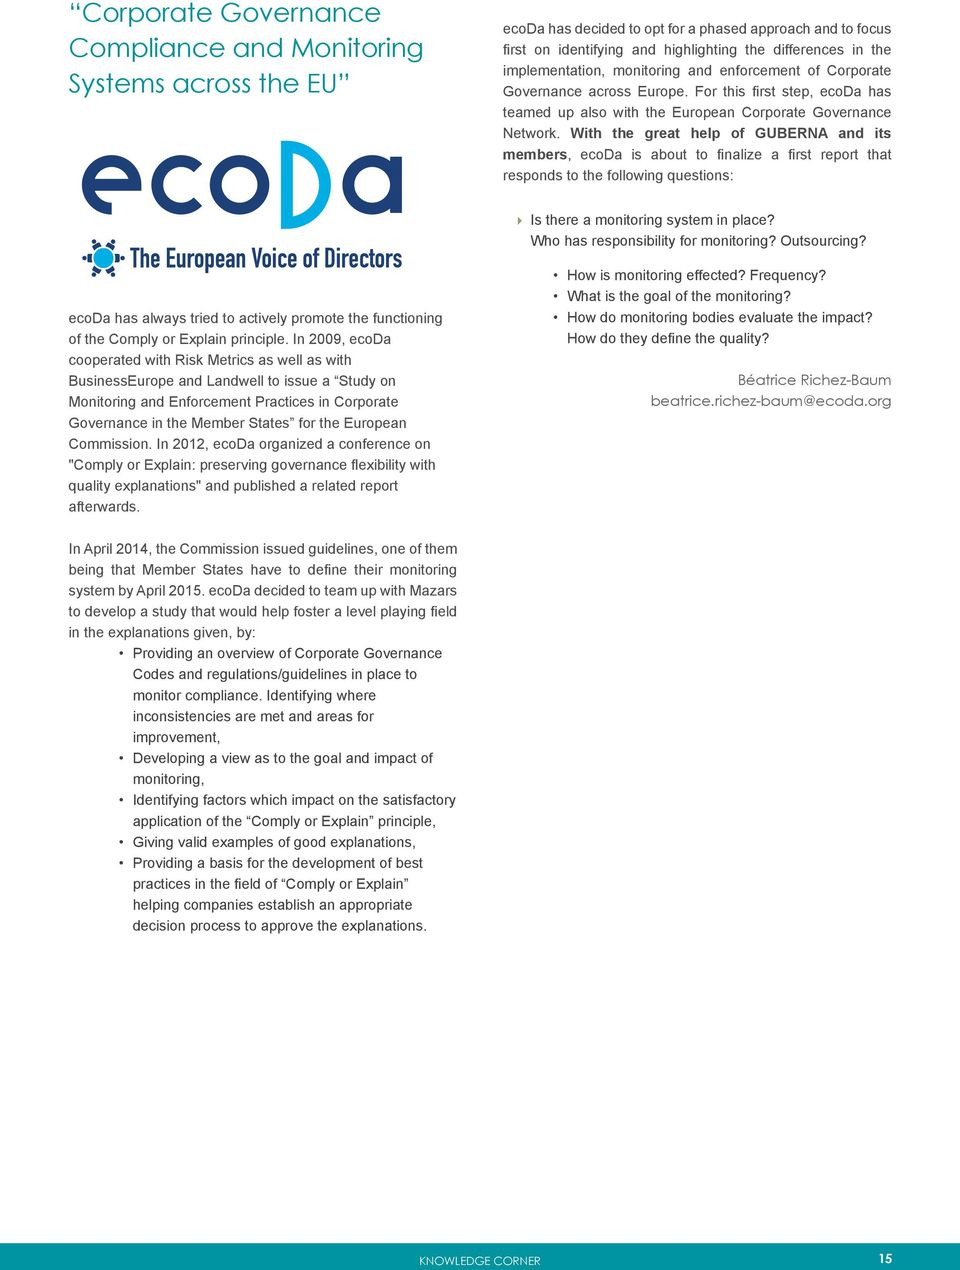 With the great help of GUBERNA and its members, ecoda is about to finalize a first report that responds to the following questions: Is there a monitoring system in place?